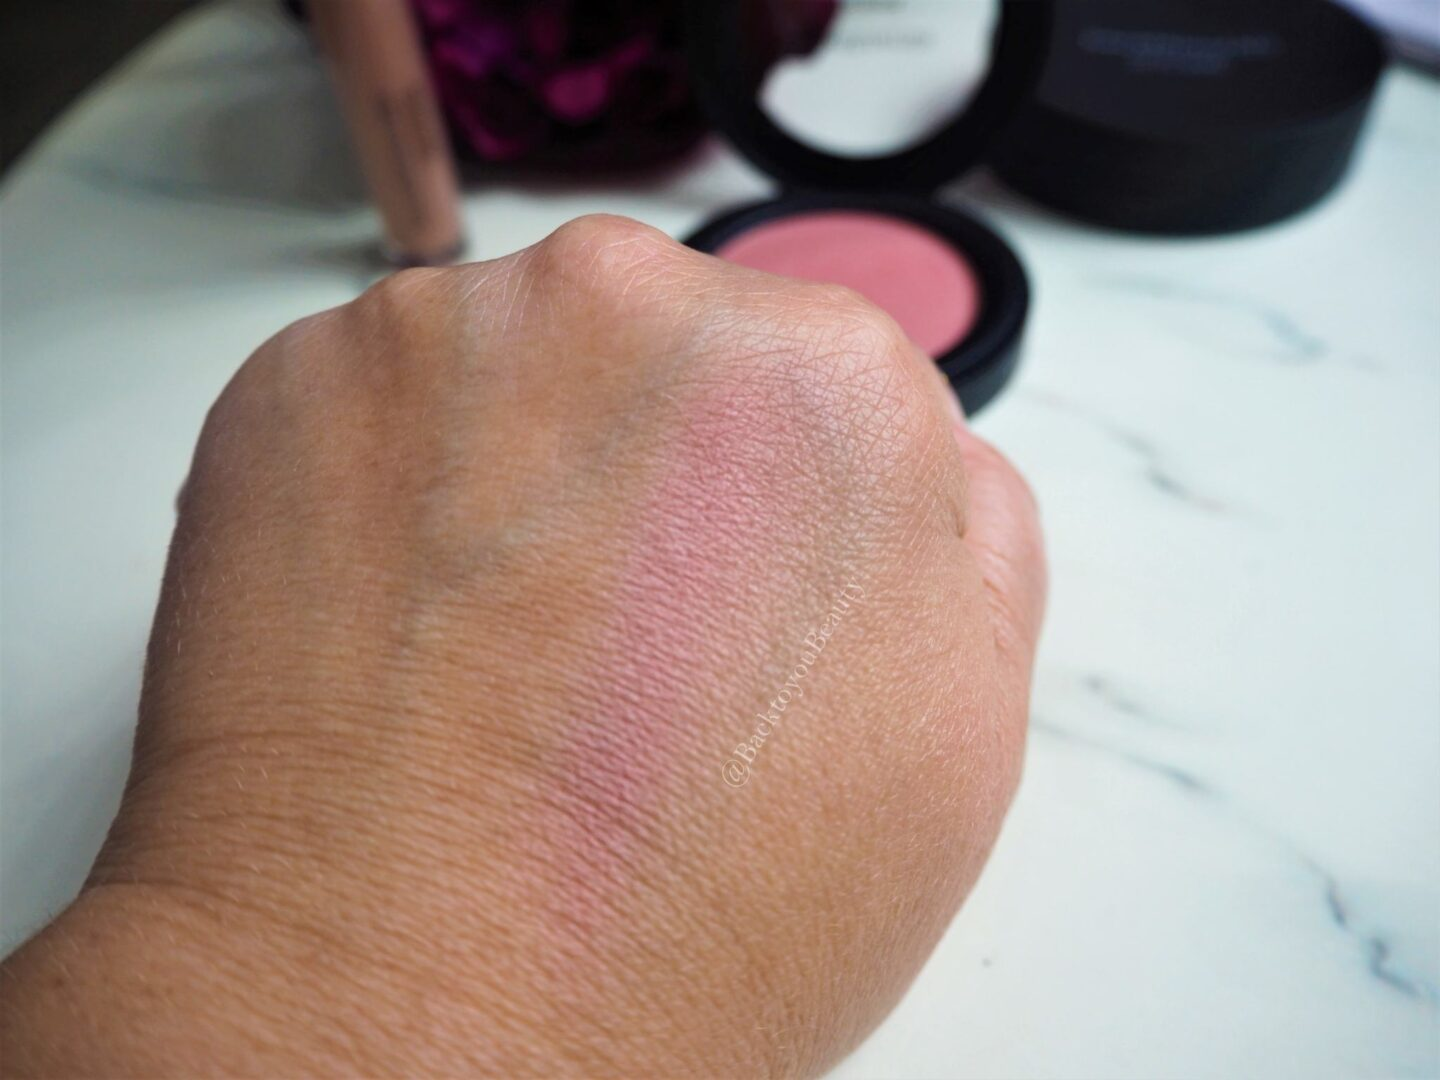 bareminerals gen nude blush in call my blush